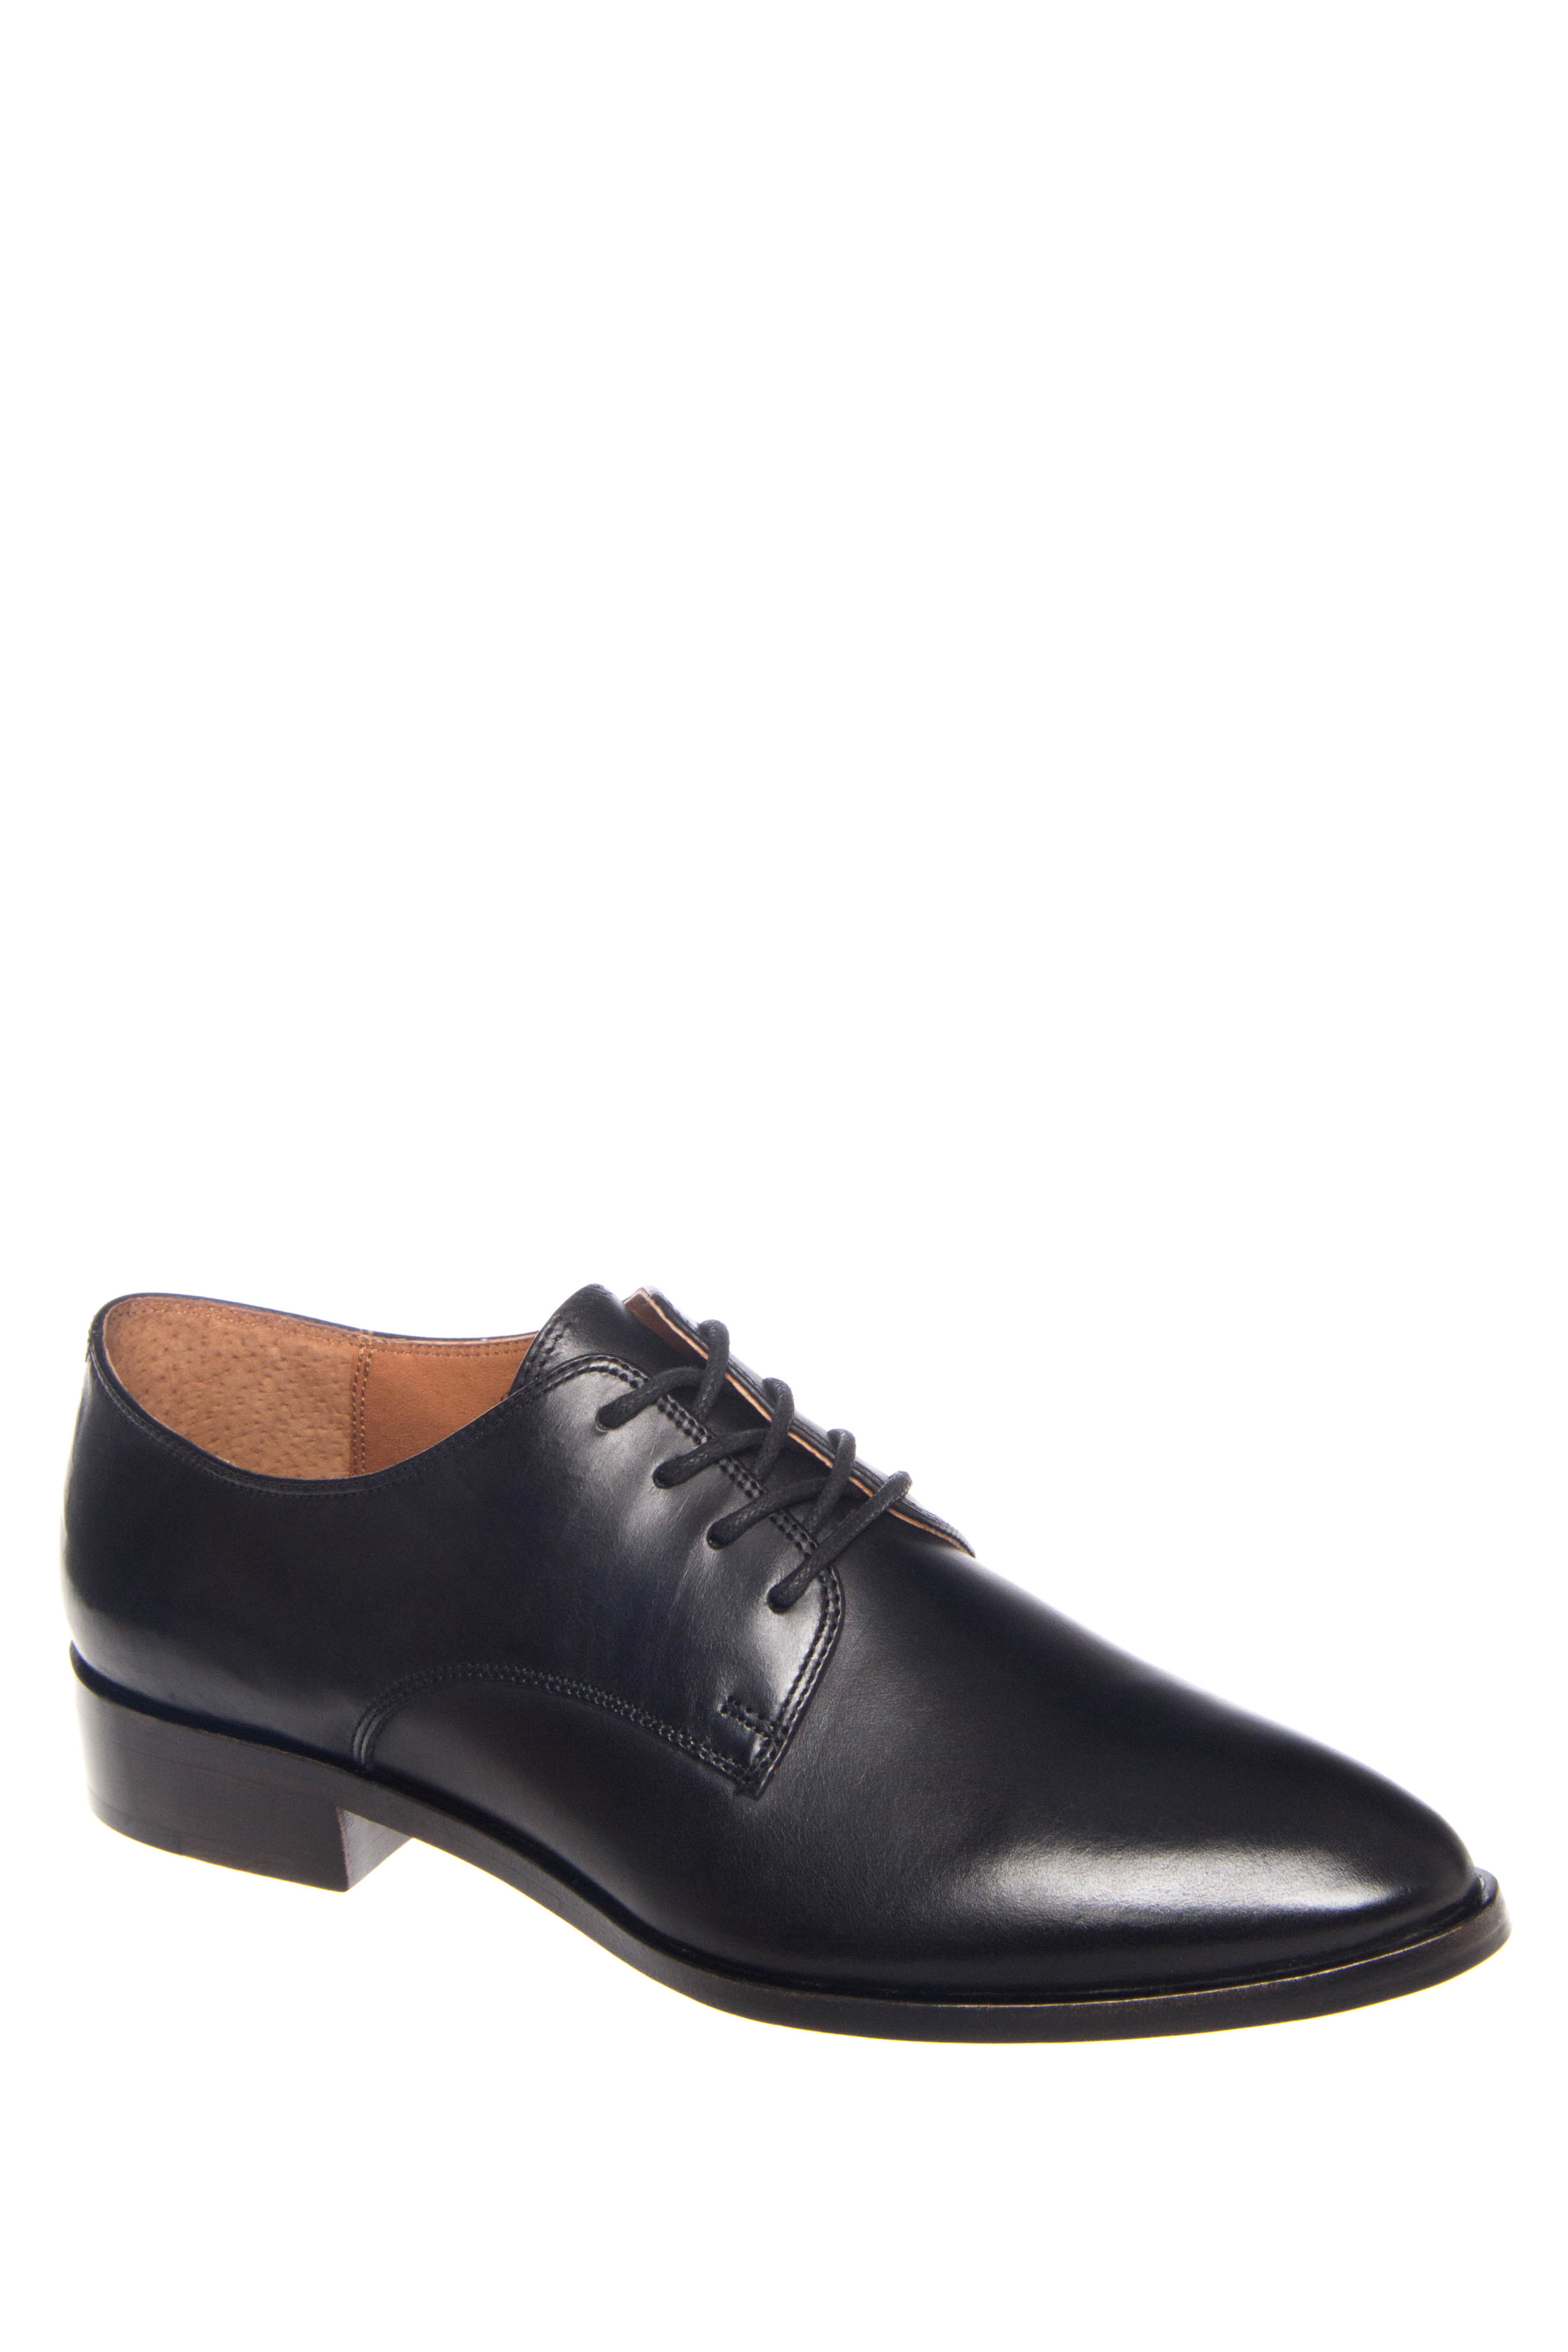 Frye Erica Leather Oxford - Black